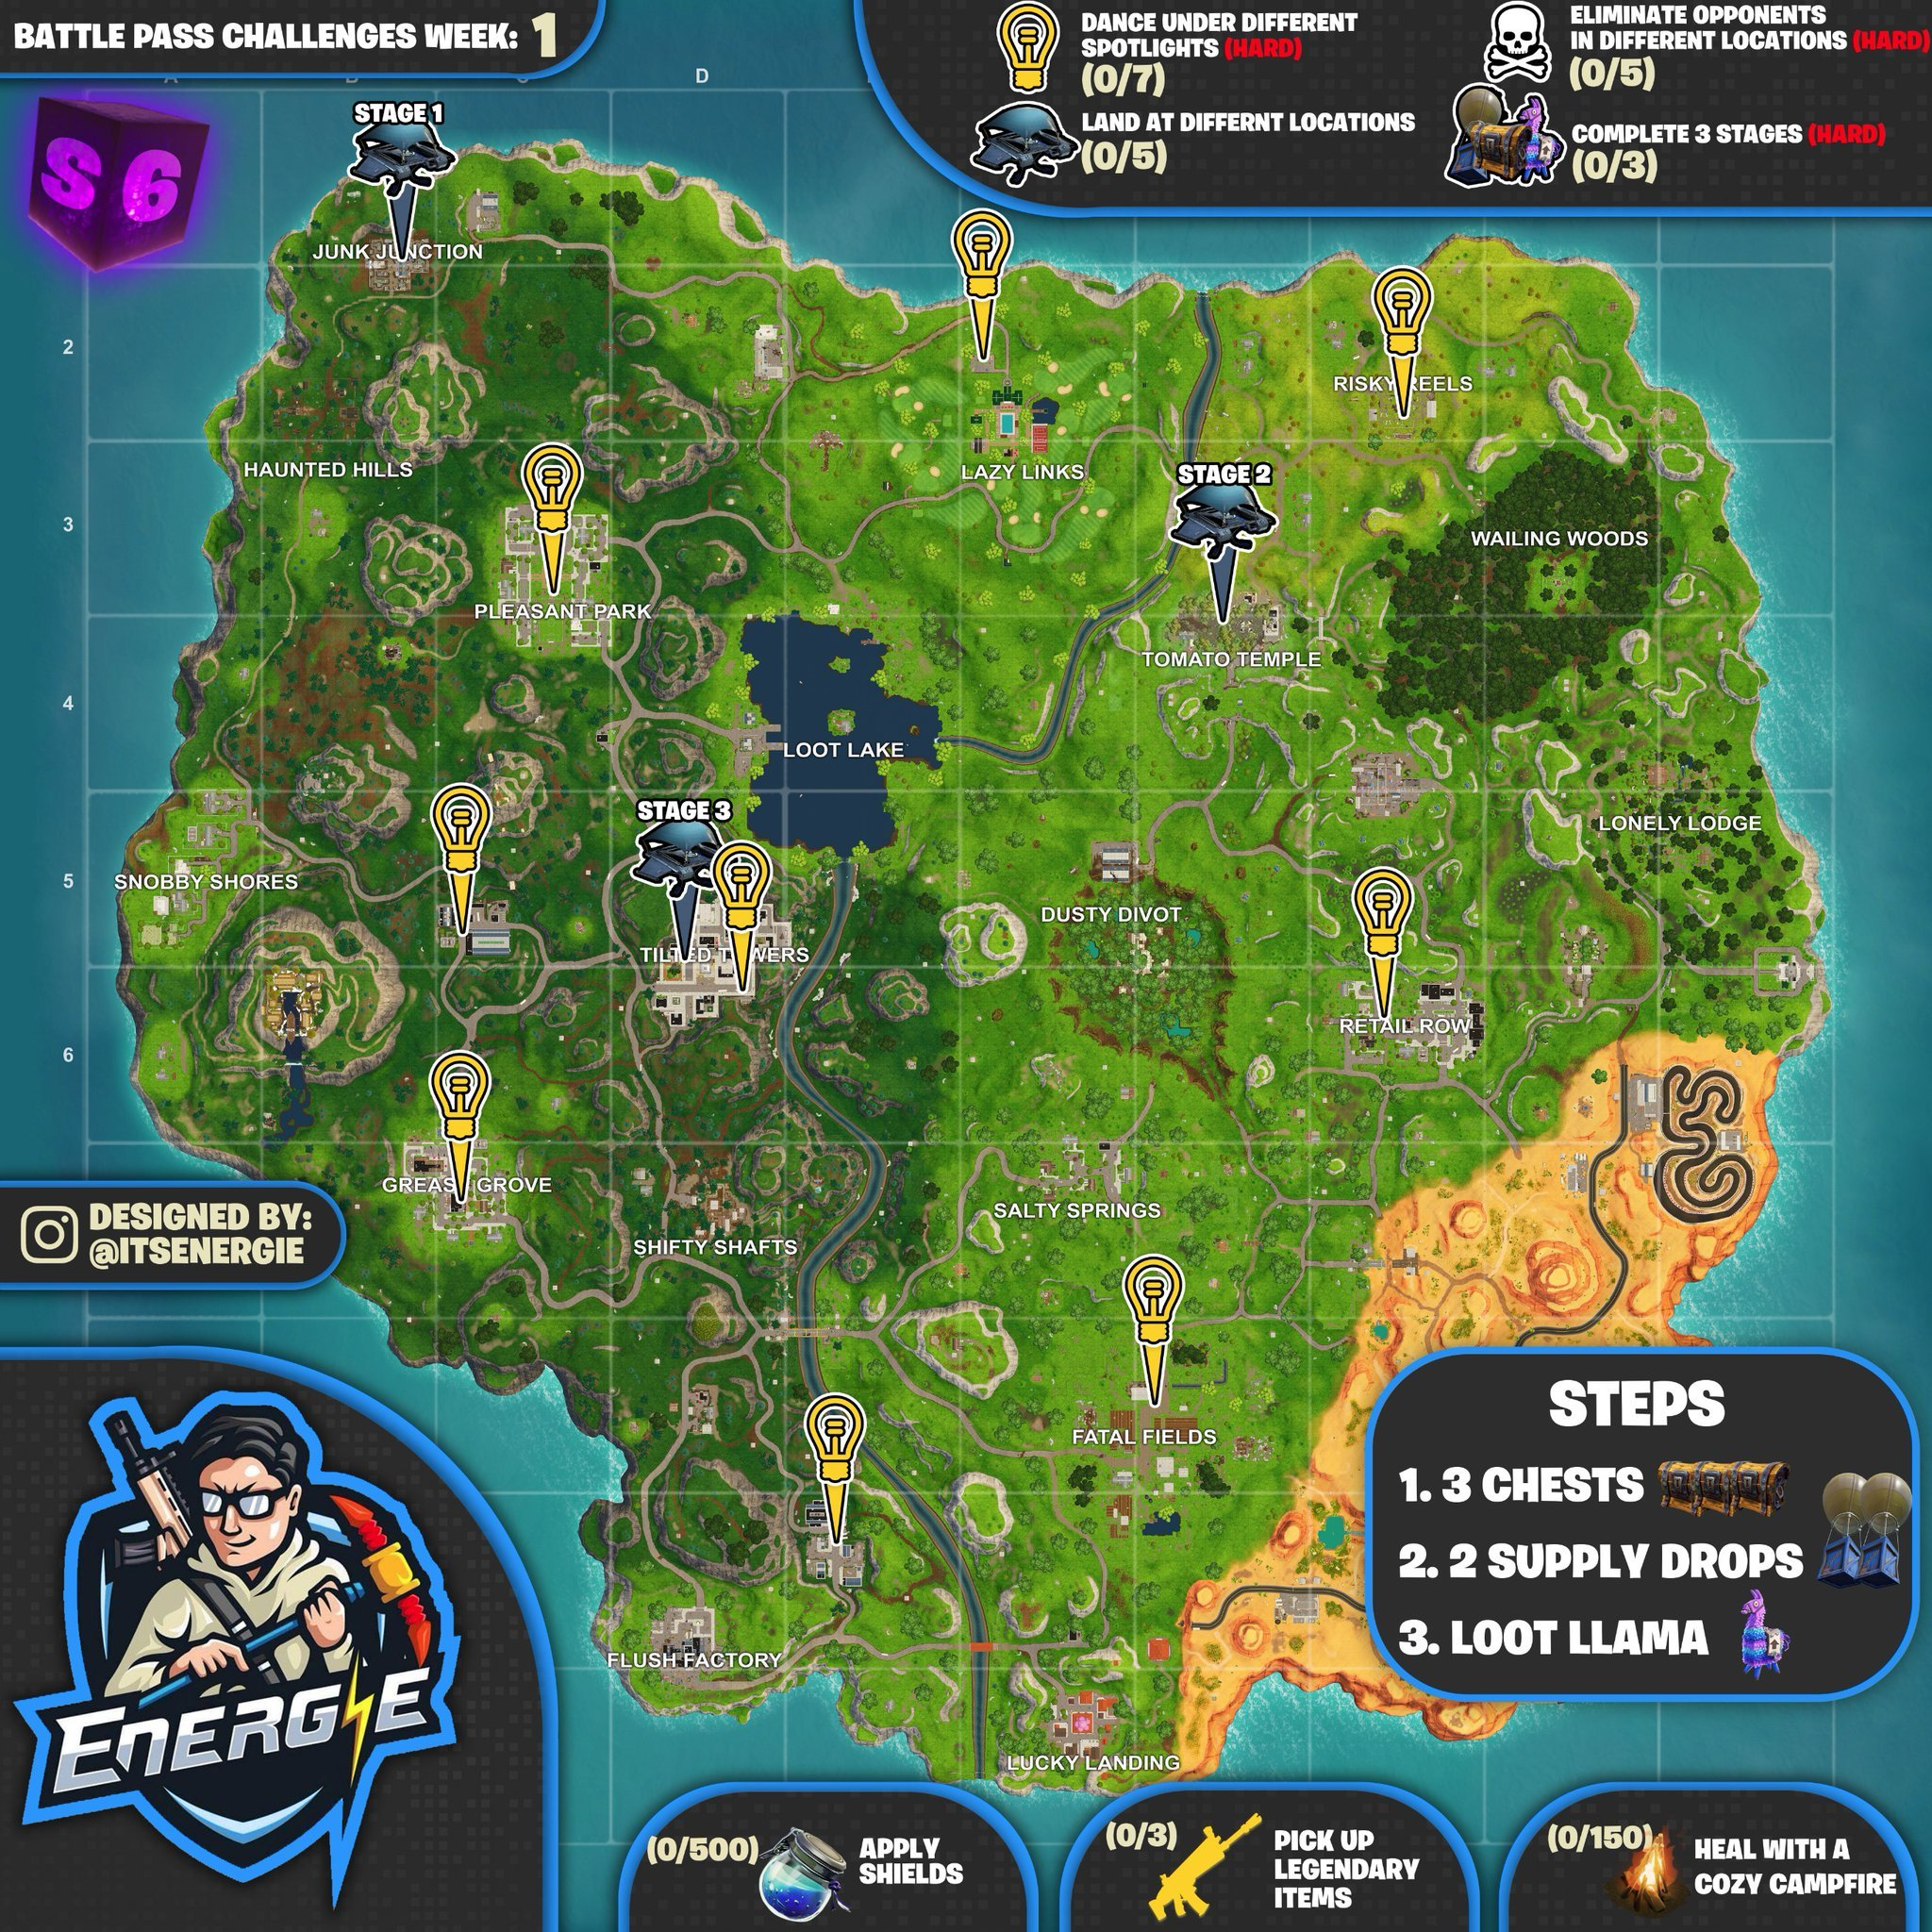 Fortnite Cheat Sheet map for Season 6, Week 1